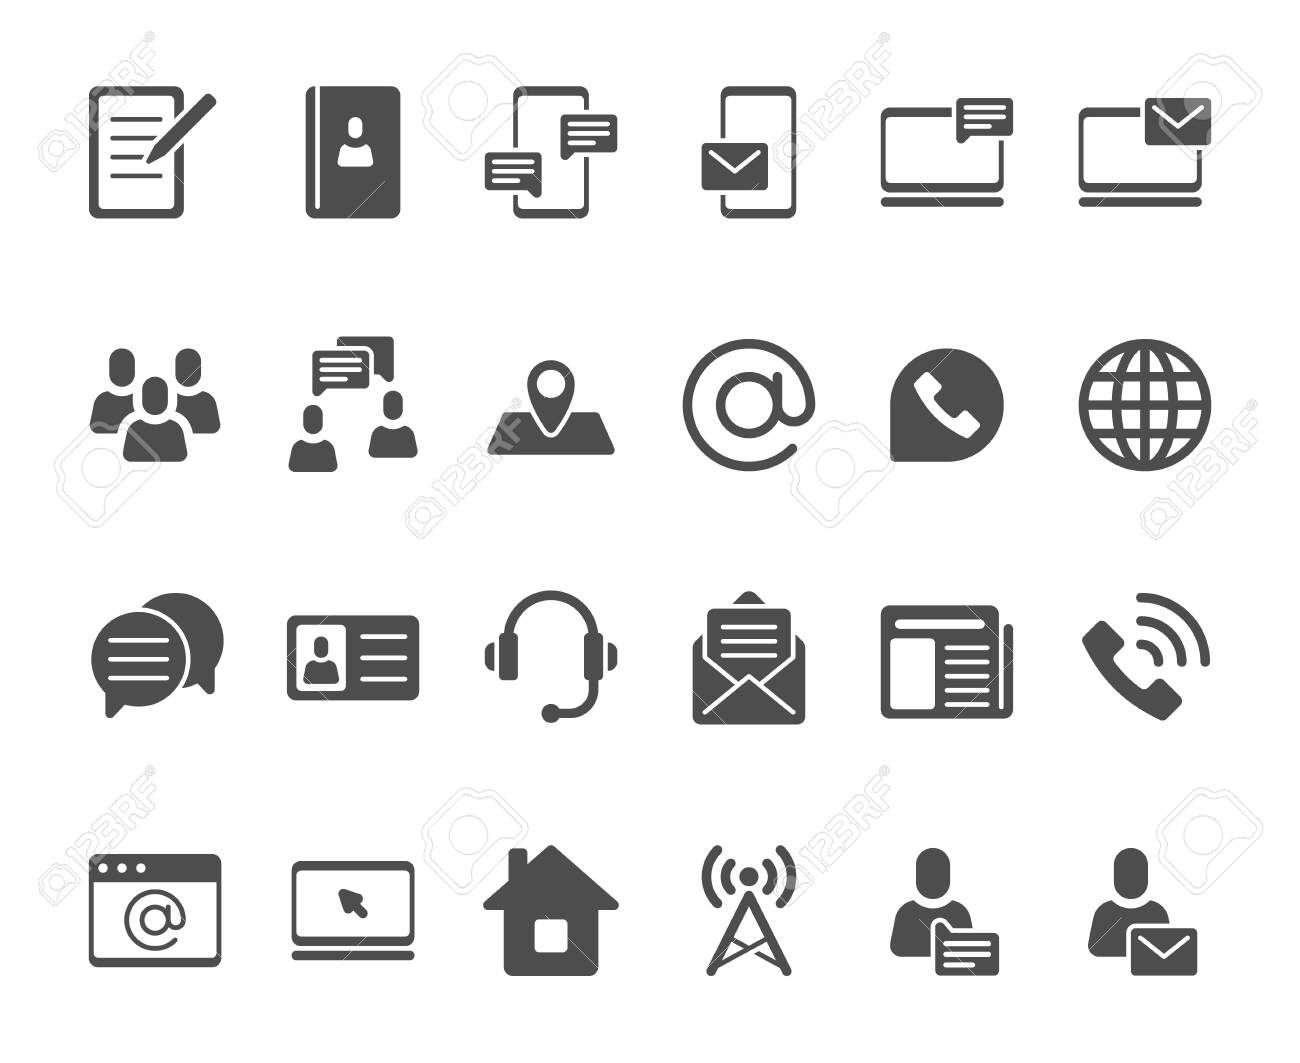 Contact icons  Telephone contacts silhouette, address book icon